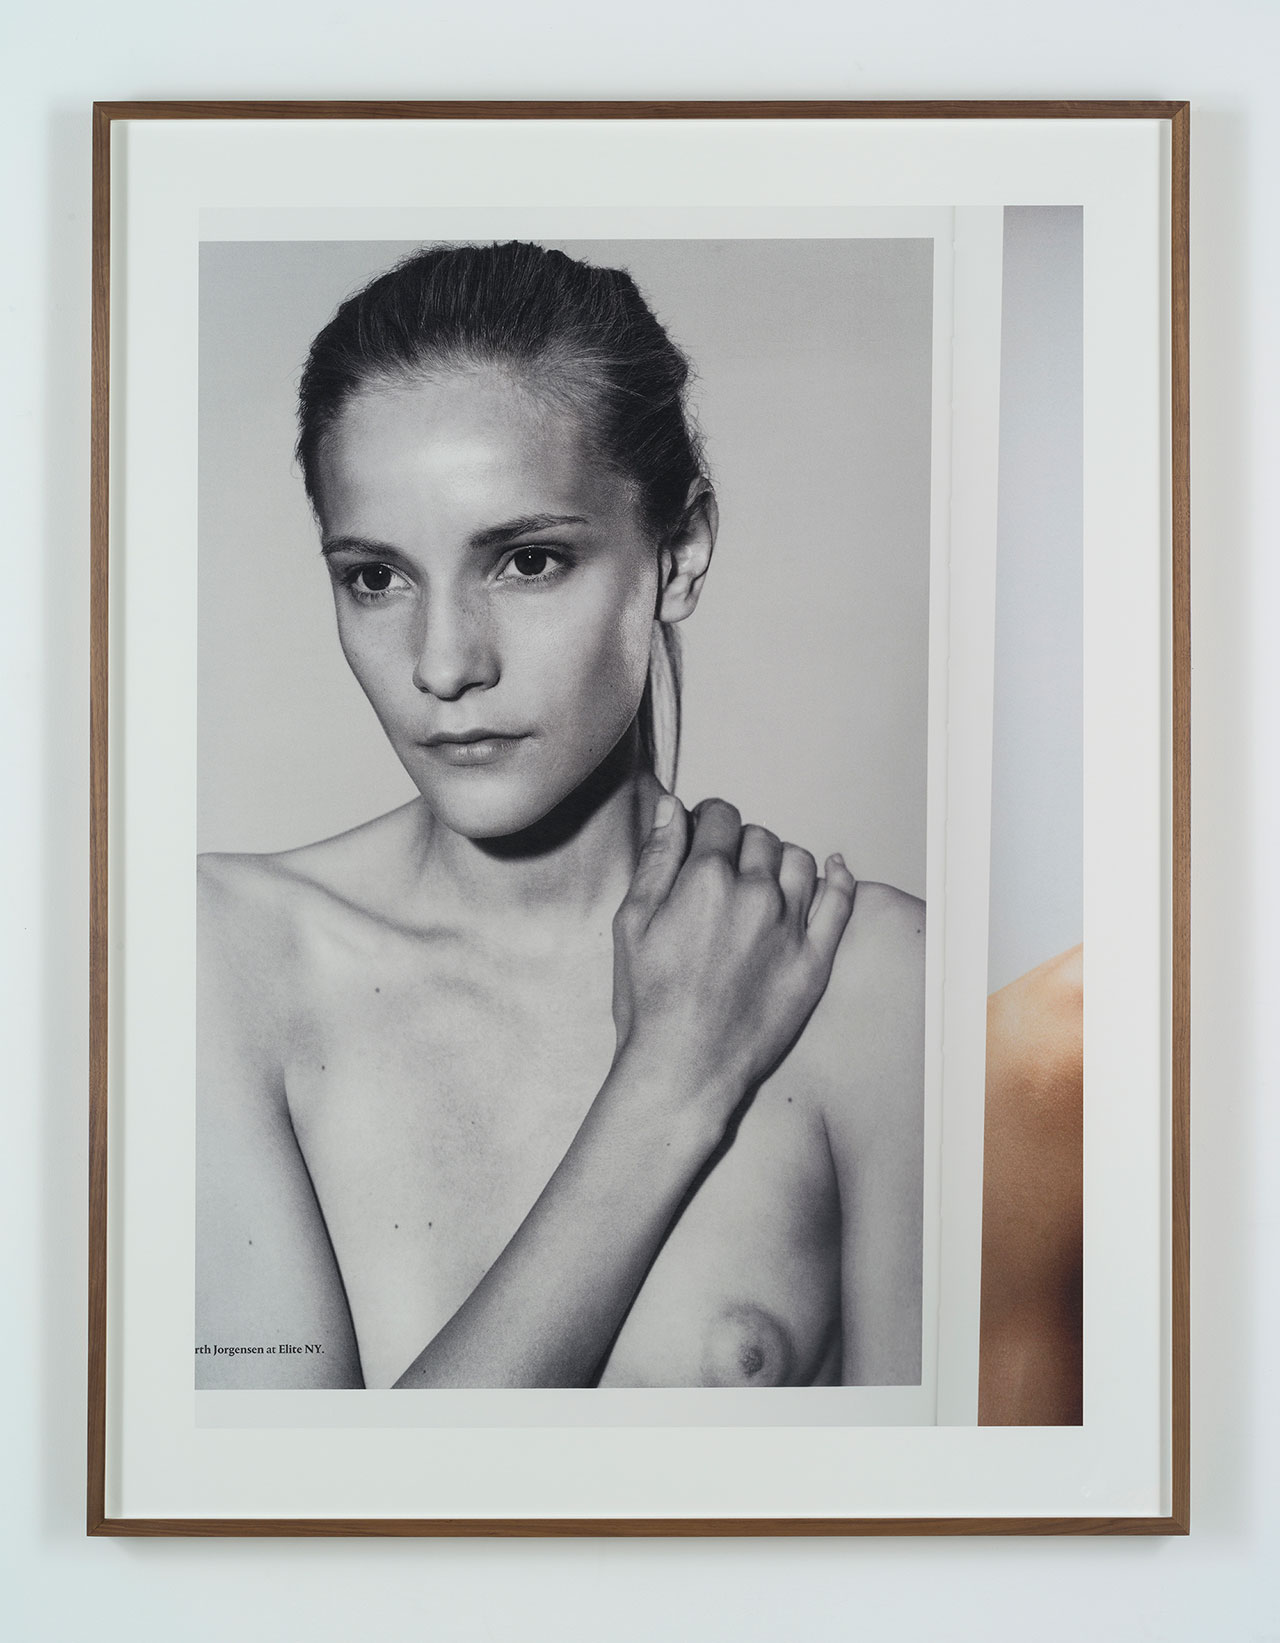 Collier Schorr (b. 1963), Dorothea, 2012, pigment print mounted on aluminum, 50 x 39 3/4 in. (127 x 101 cm.) image, 58 x 48 in. (147.3 x 121.9 cm.) framed. Copyright the artist. Courtesy Stuart Shave ModernArt, London and 303 Gallery, New York.